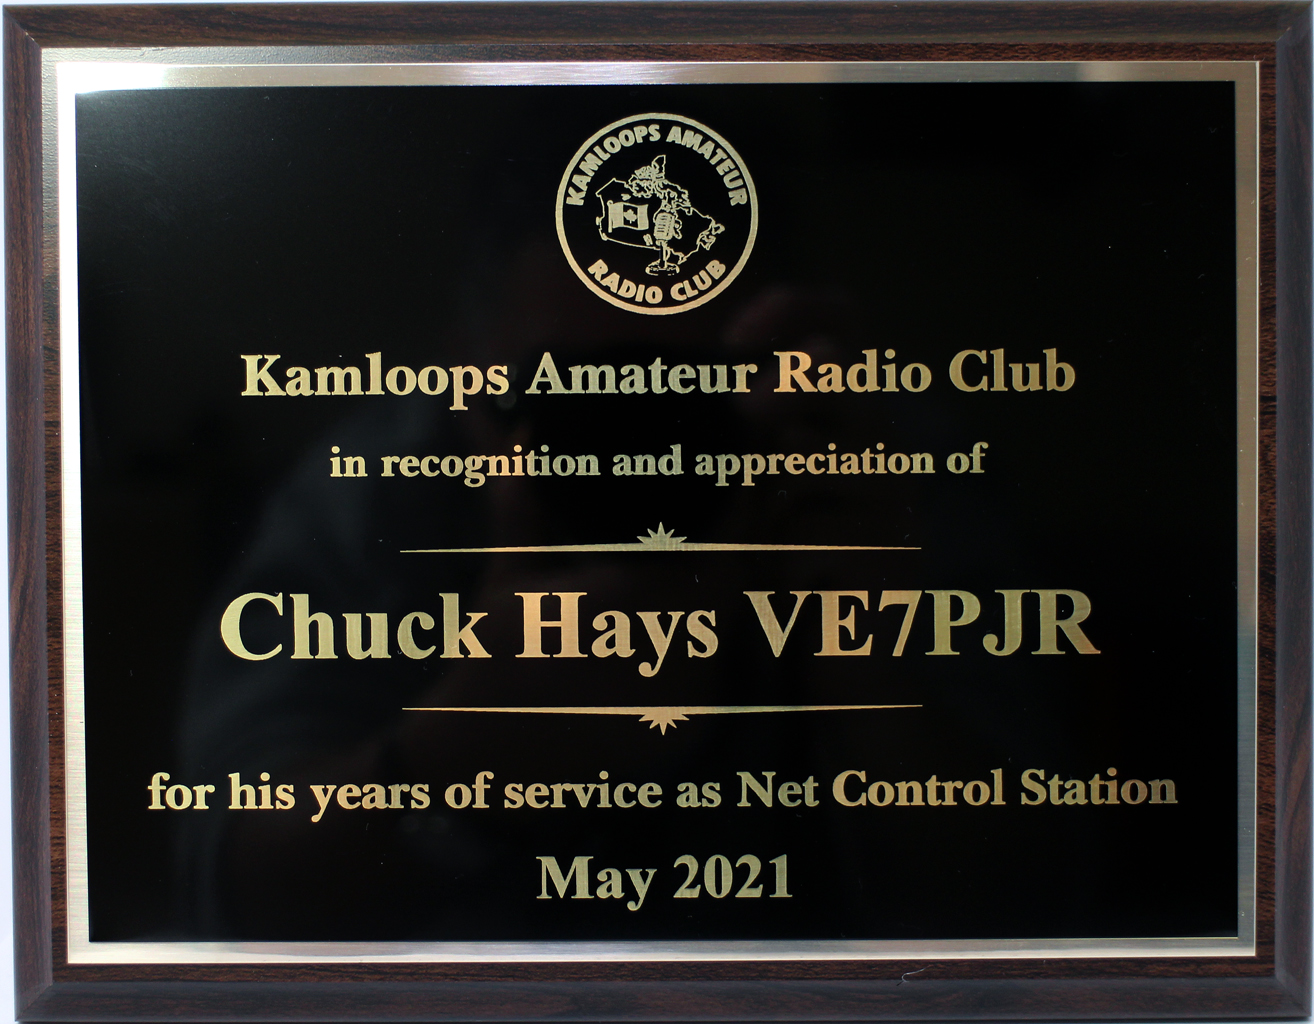 Appreciation Award presented to Chuck, VE7PJR for his service as Net Control